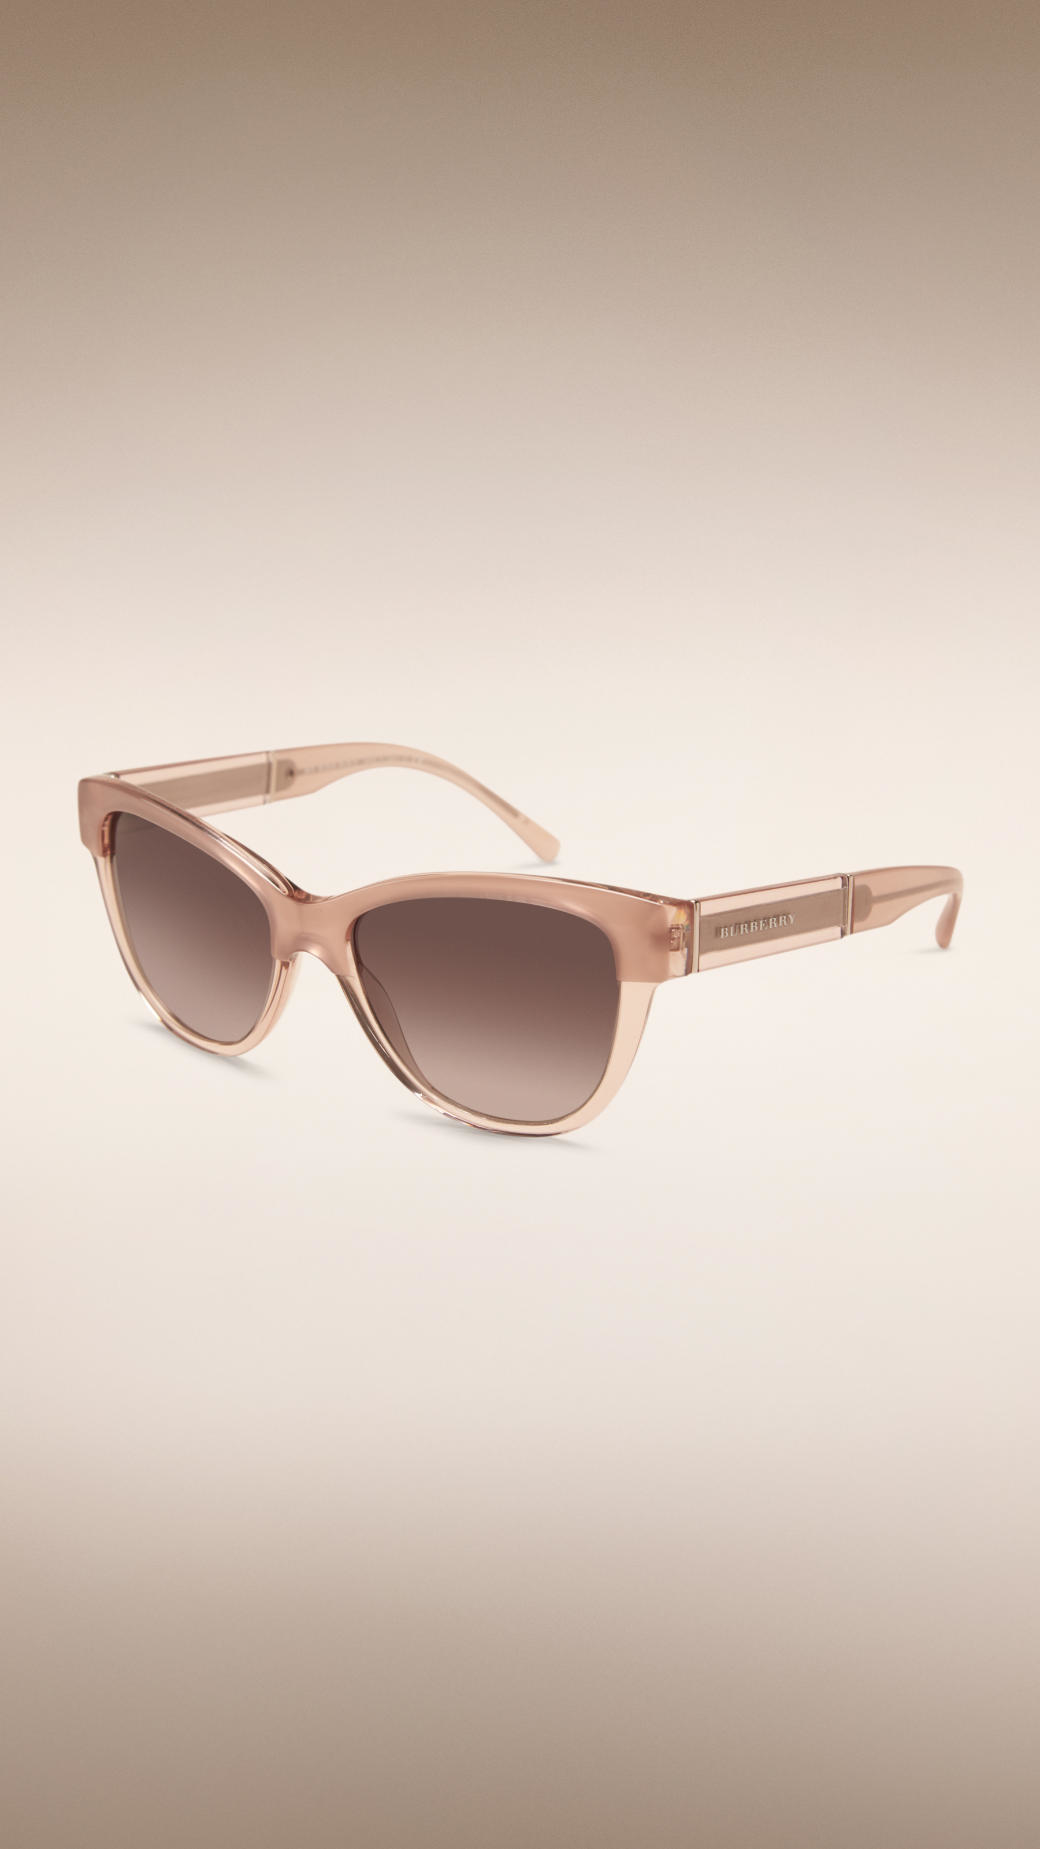 Lyst - Burberry Round Frame Sunglasses In Natural-5296